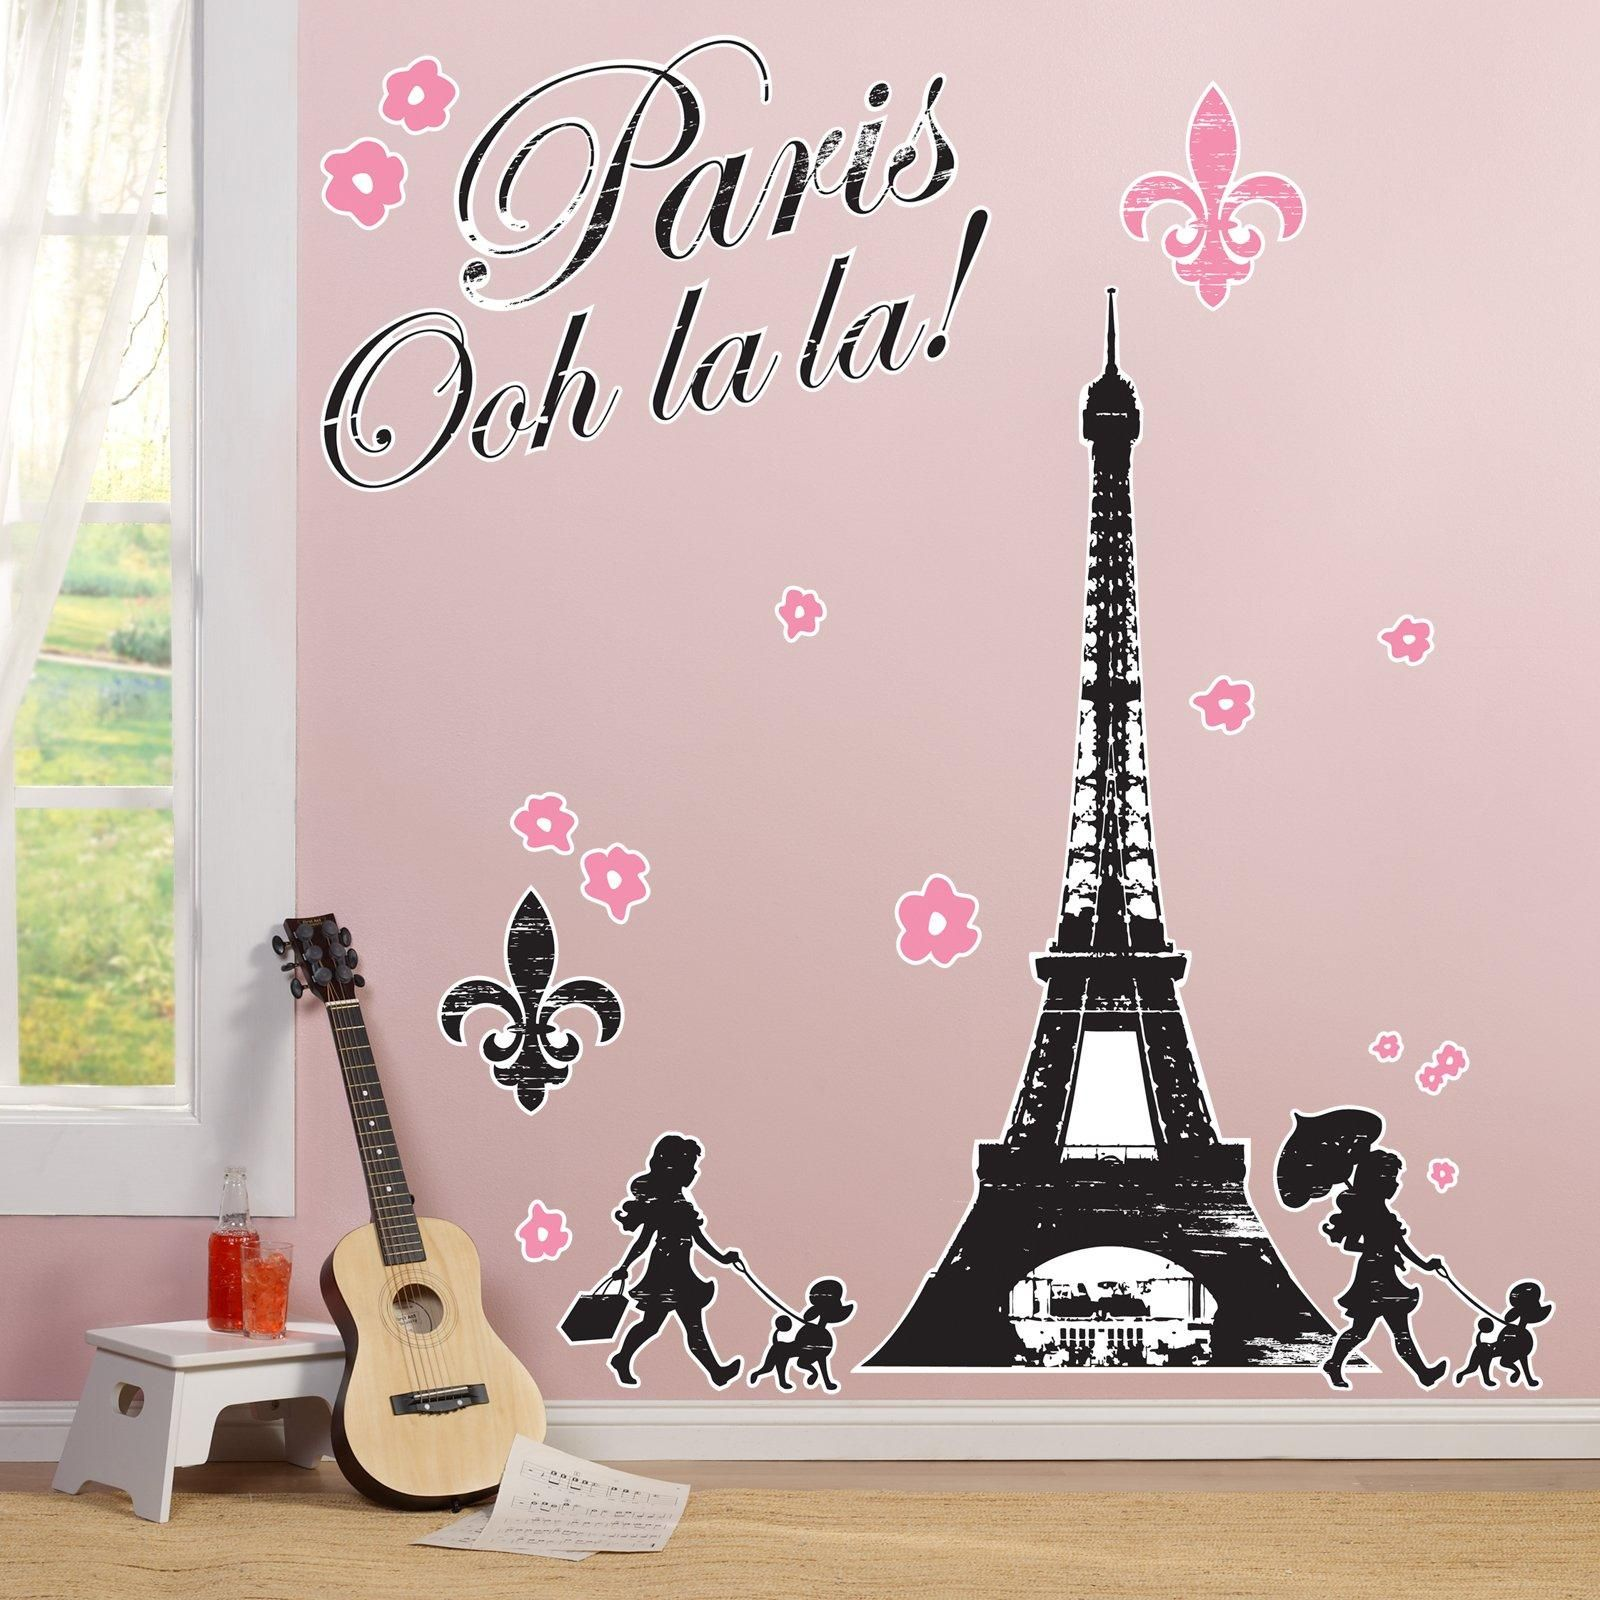 Paris Bedroom Wallpaper Paris Damask Giant Wall Decals Ps Decals And Damasks